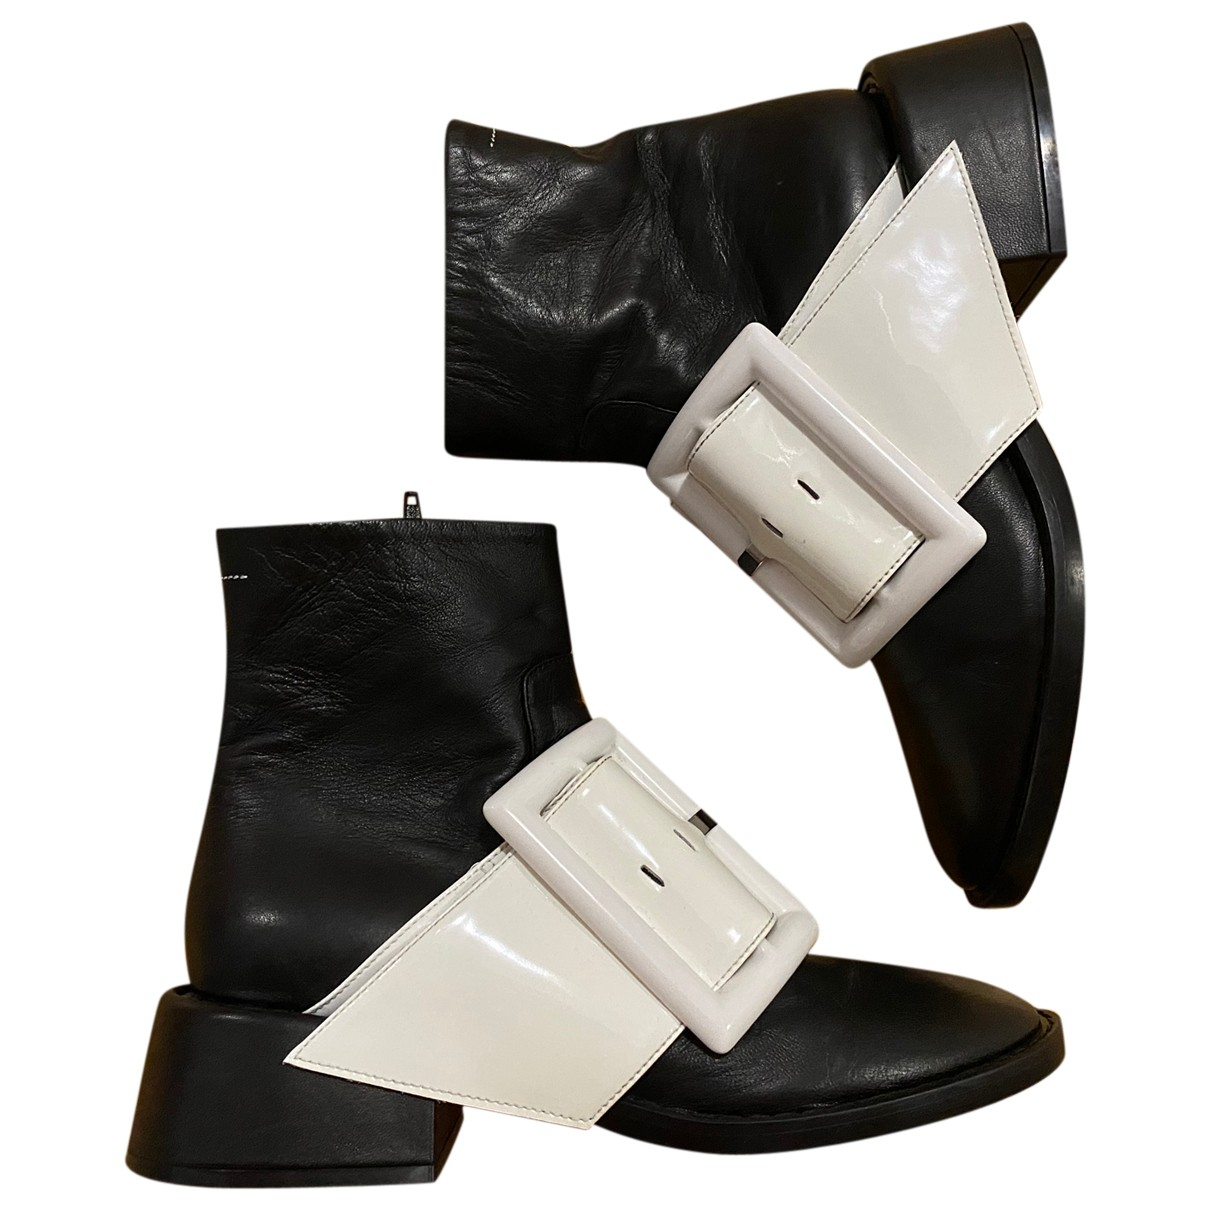 Mm6 \N Black Leather Ankle boots for Women 39 EU